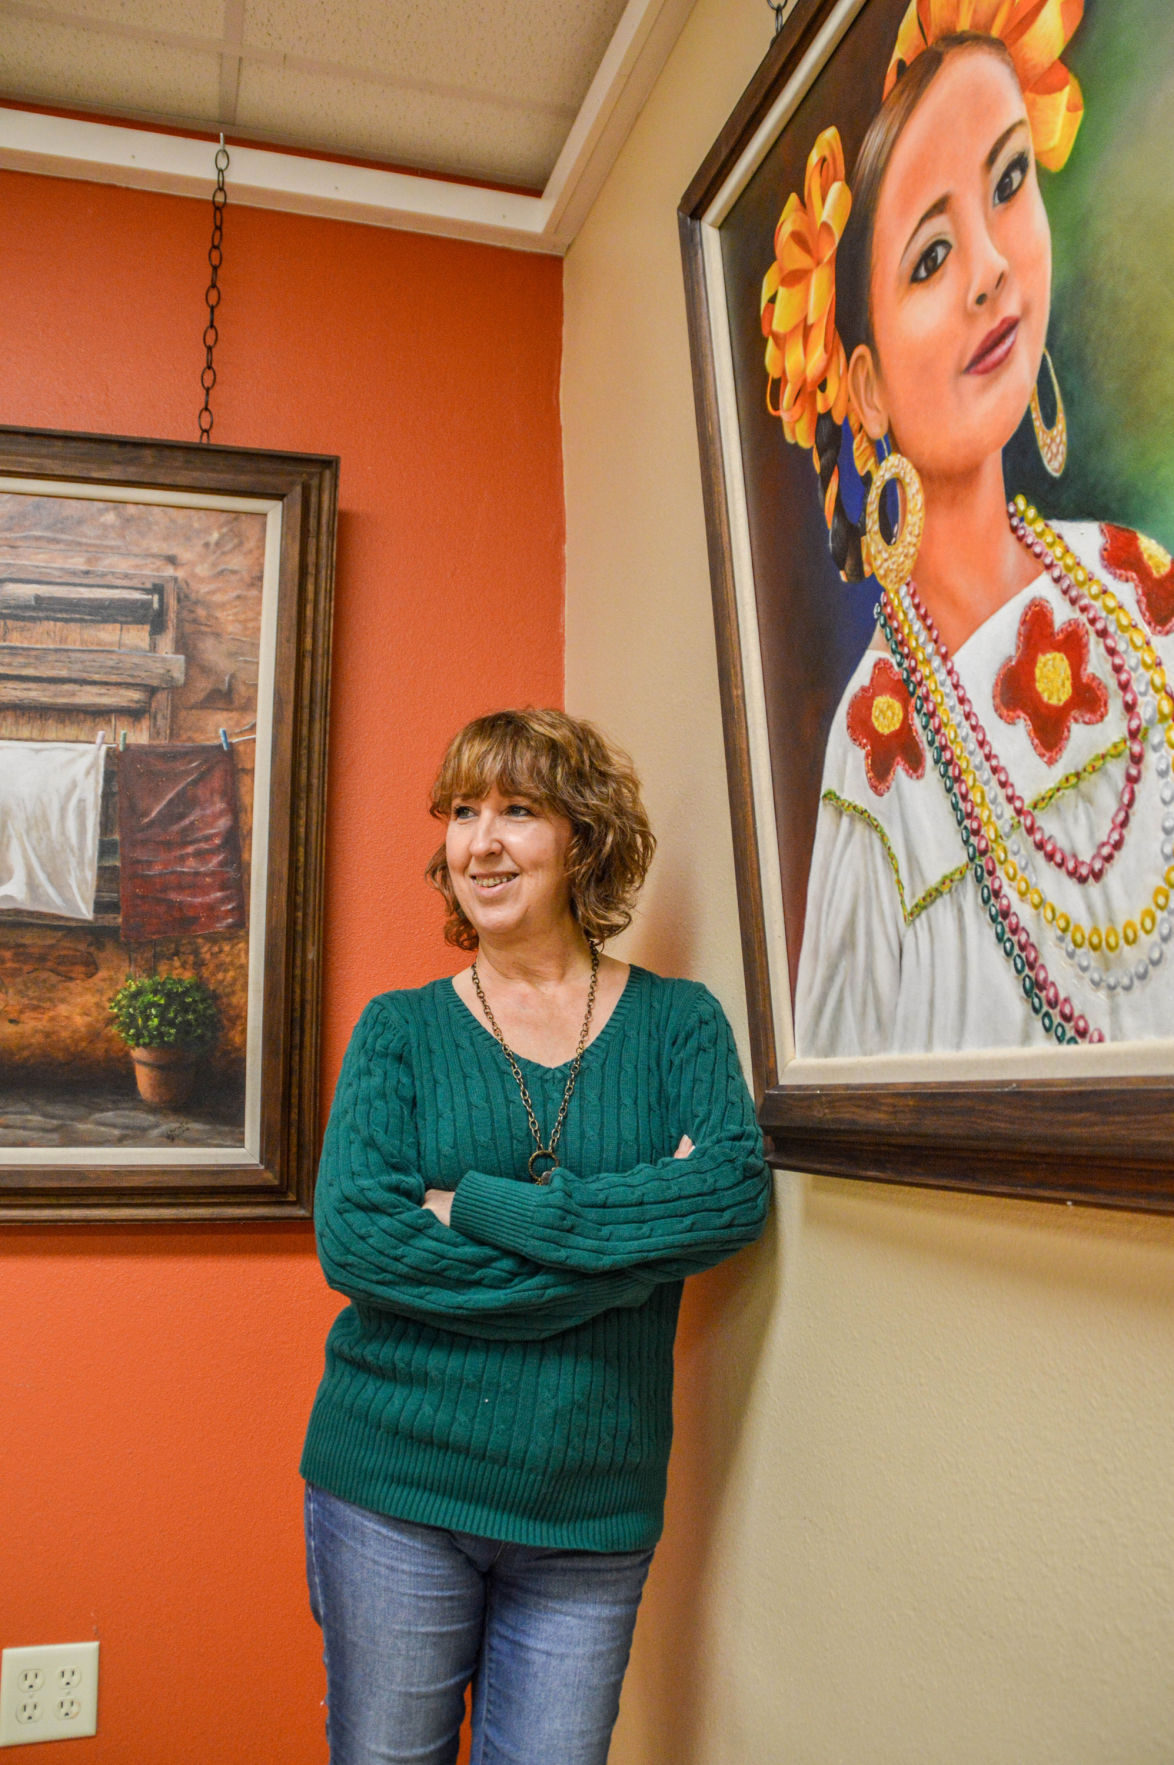 Sinton Chamber of Commerce takes artistic approach to tourism